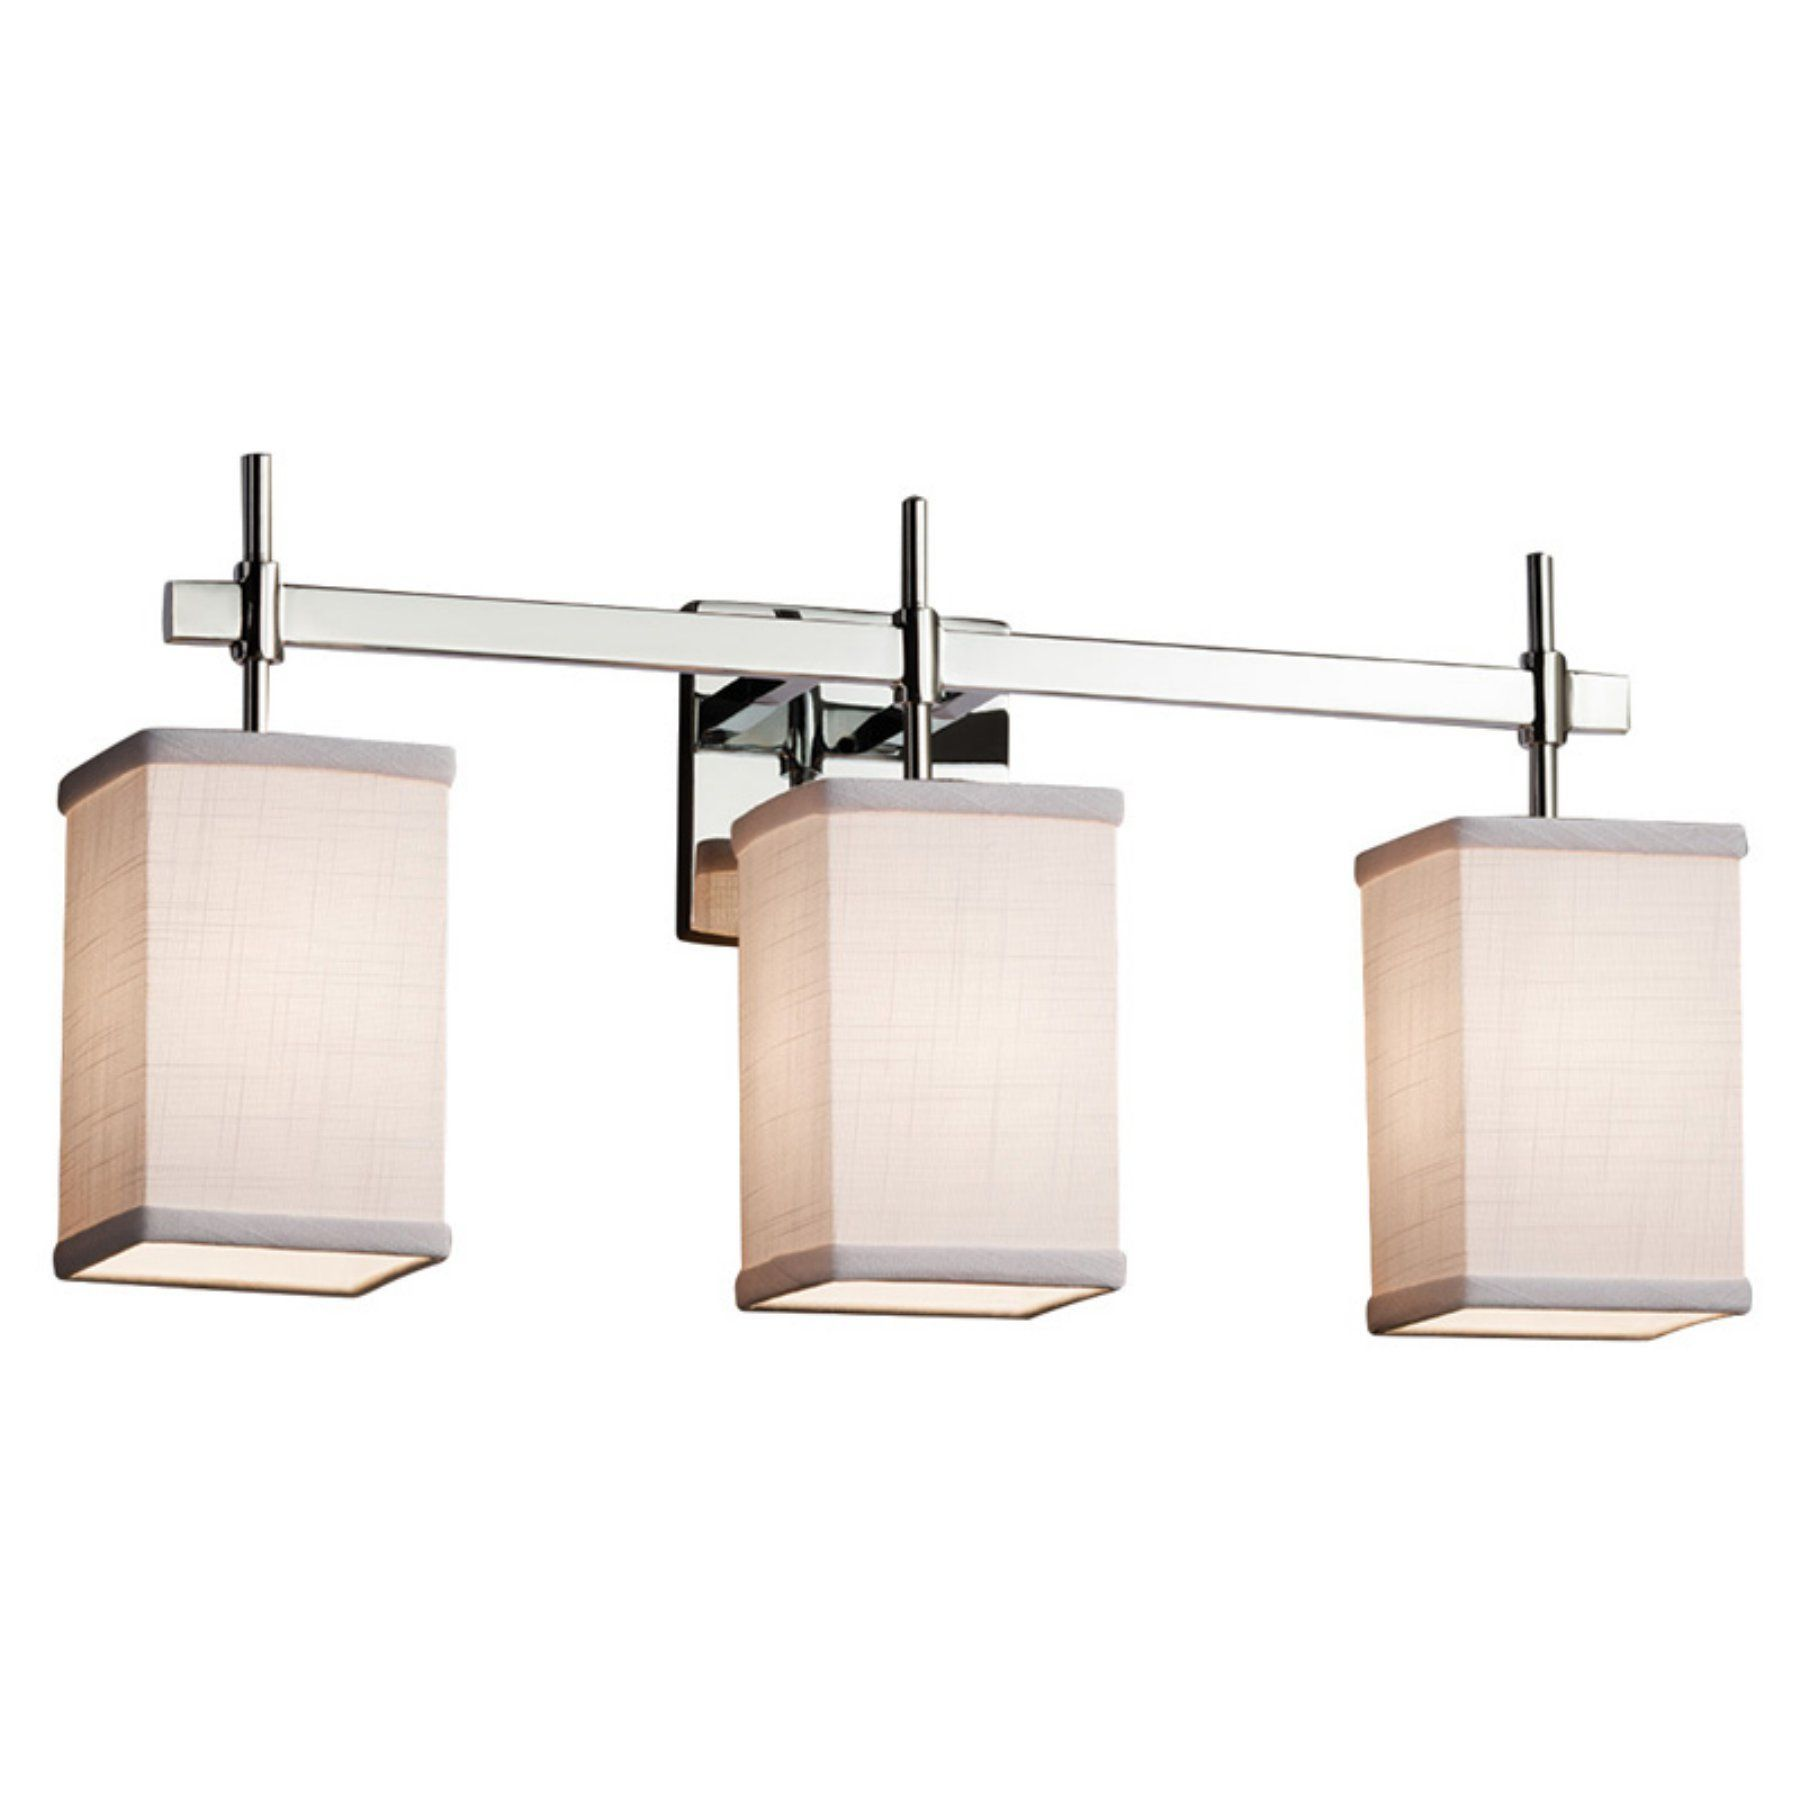 Justice Design Group Textile Union FAB-8413-15 Bathroom Vanity Light ...